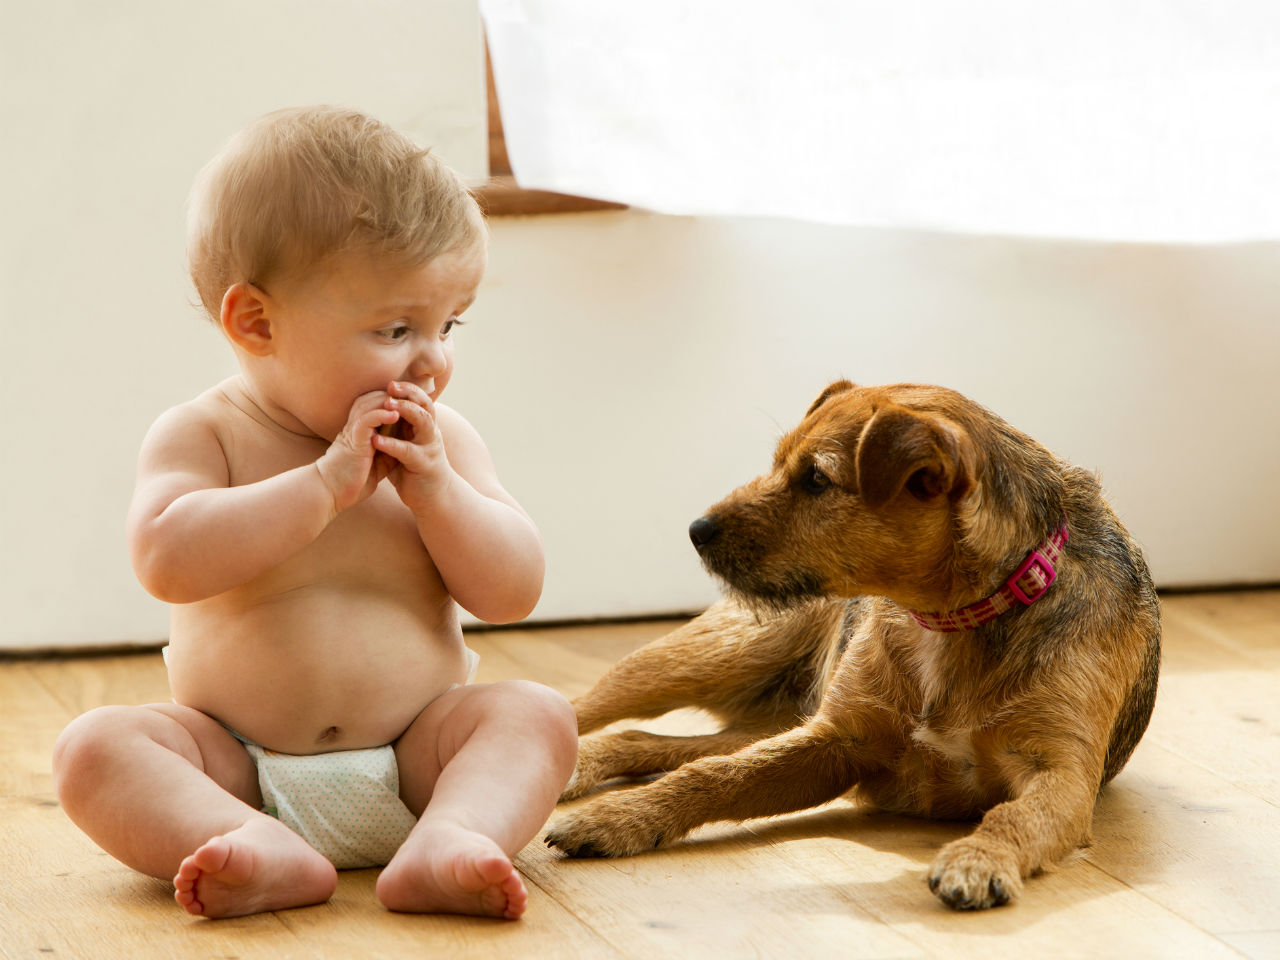 Pets reduce the risk of obesity and prevent allergies in babies